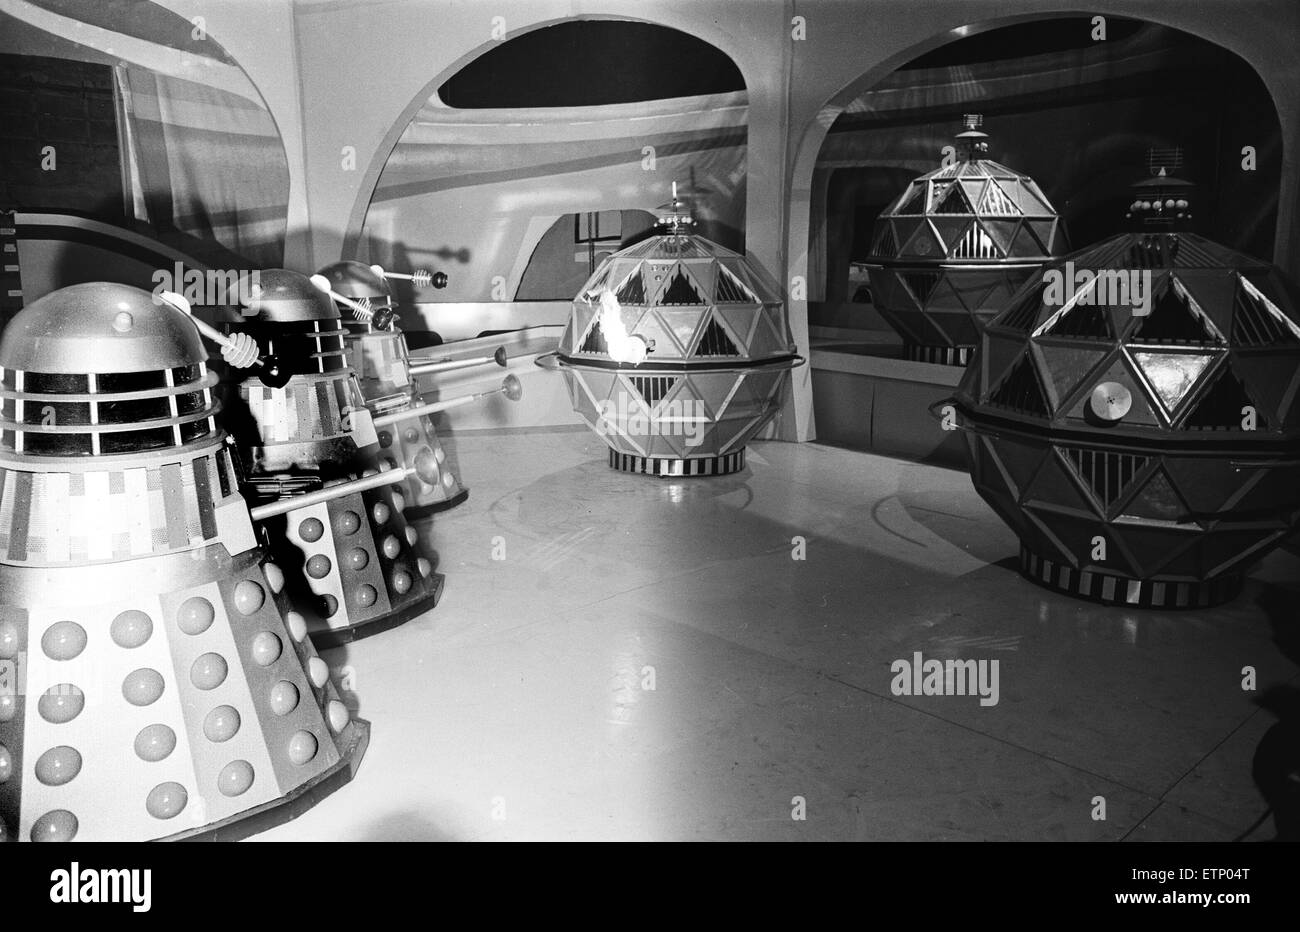 Doctor Who, TV Series, Scene from story called  'The Chase', eighth series, season 2. Pictures show the - Stock Image